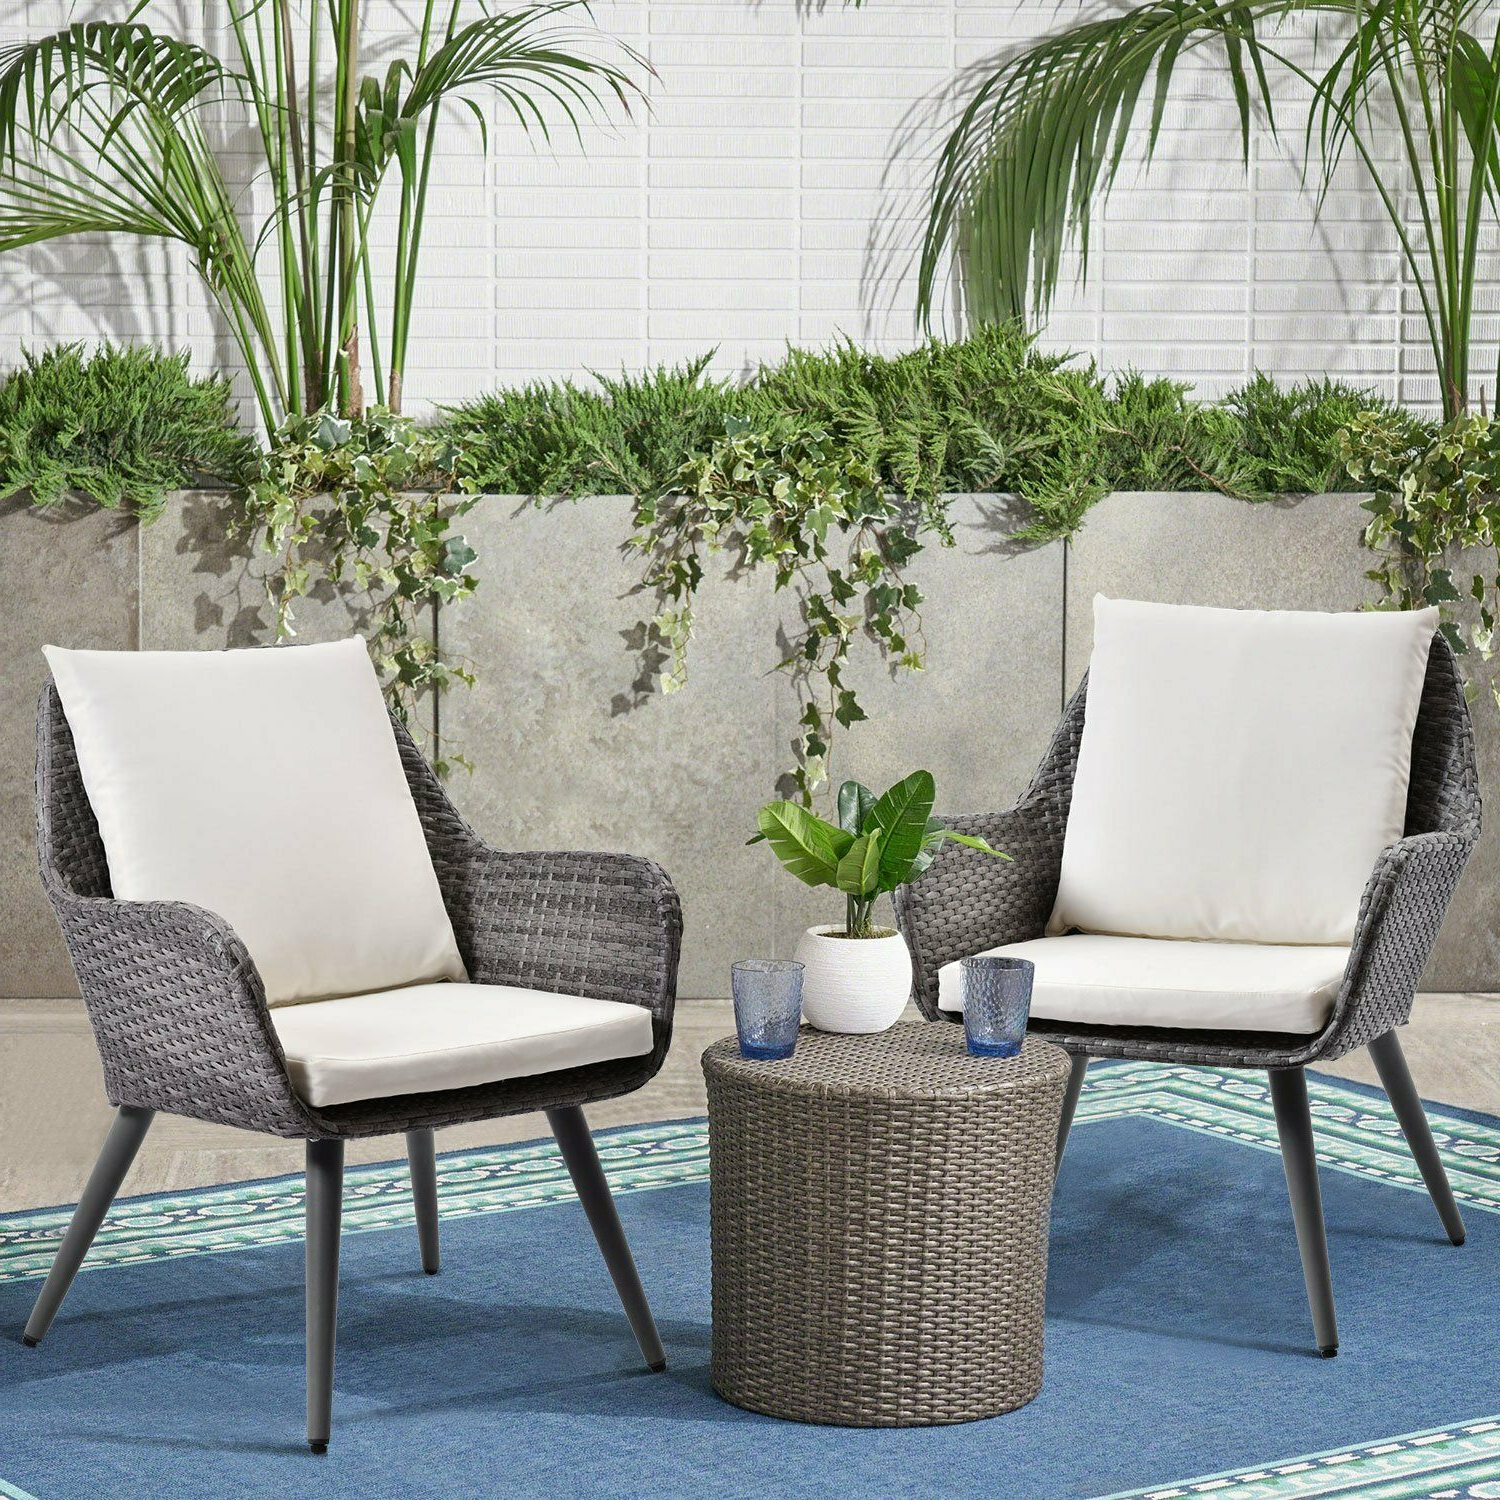 Well Liked Outdoor Wicker Dining Chair Pe Rattan Accent Chair With Cushion Patio Furniture Intended For Outdoor Rustic Acacia Wood Chaise Lounges With Wicker Seat (View 25 of 25)